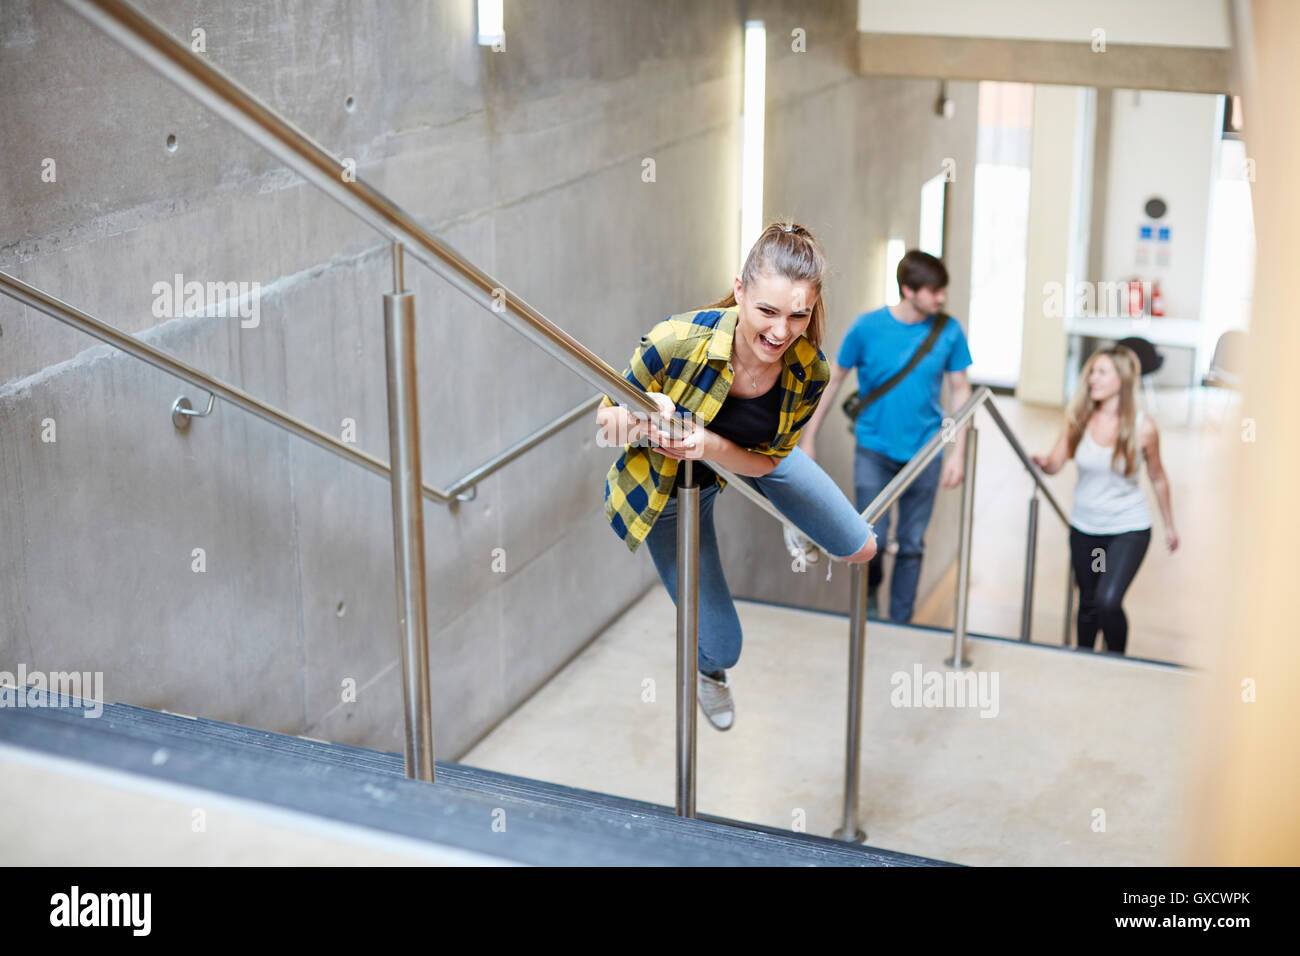 Young female student sliding down stairway handrail at higher education college - Stock Image